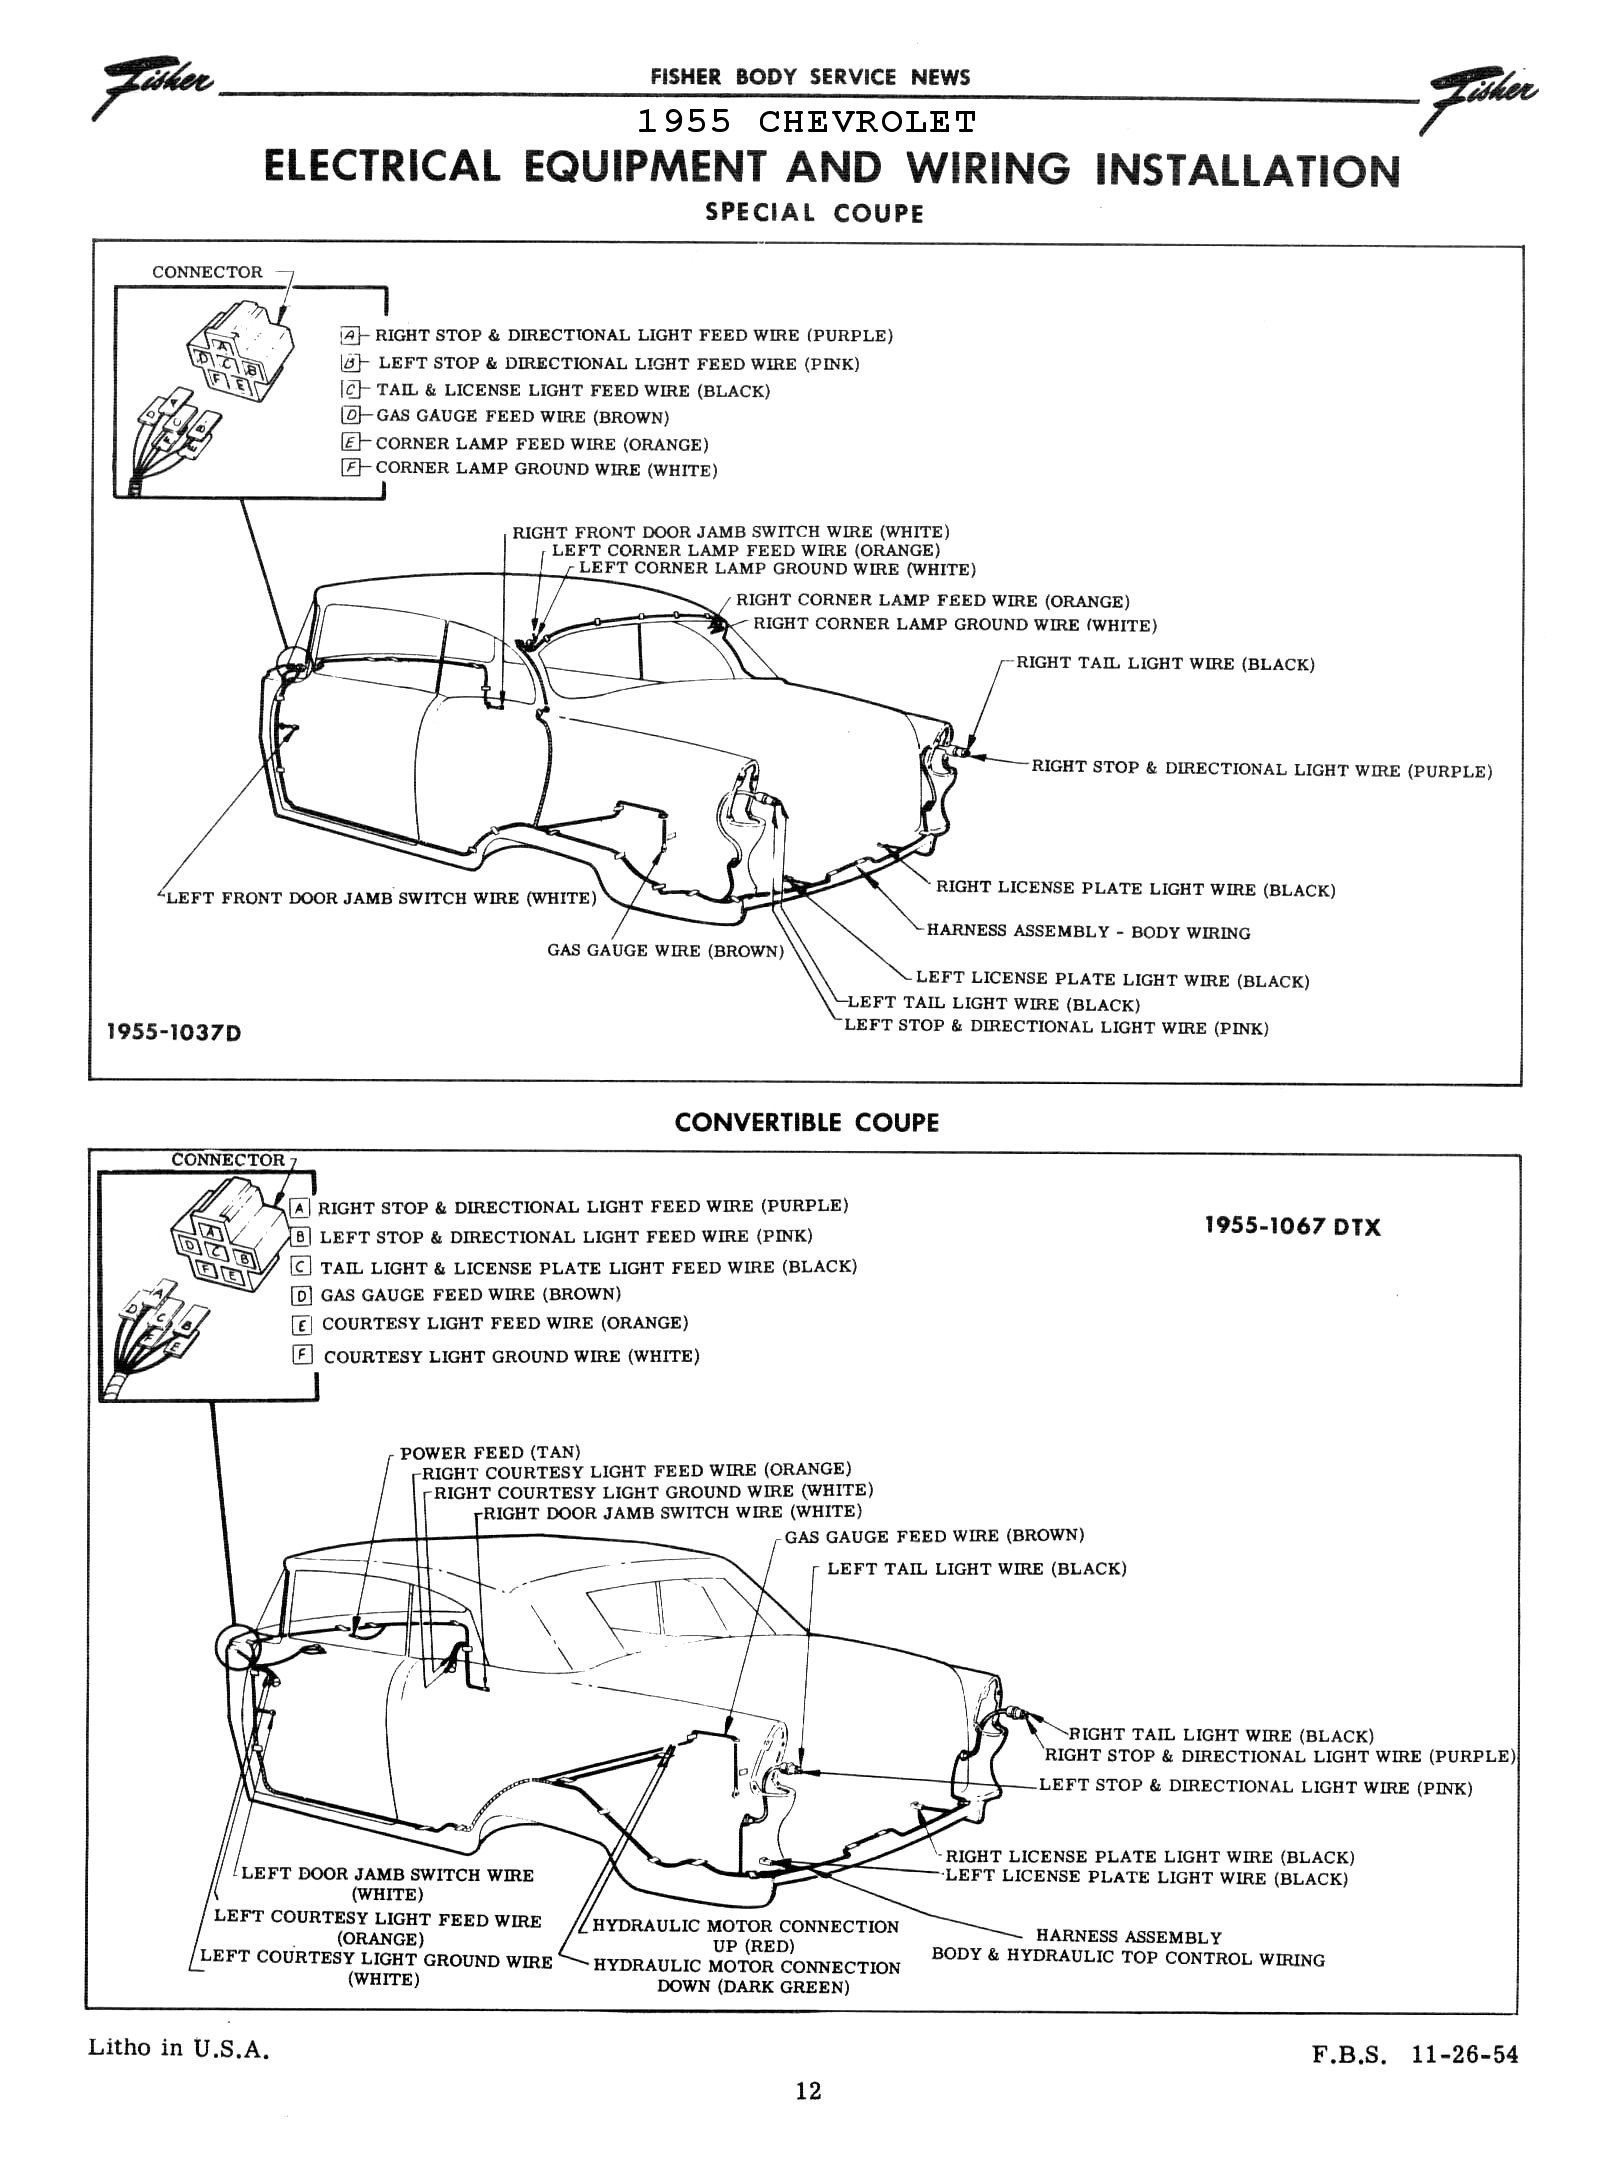 Chevy Wiring Diagrams 2001 Corvette Headlight Motor Diagram 1955 Body 3